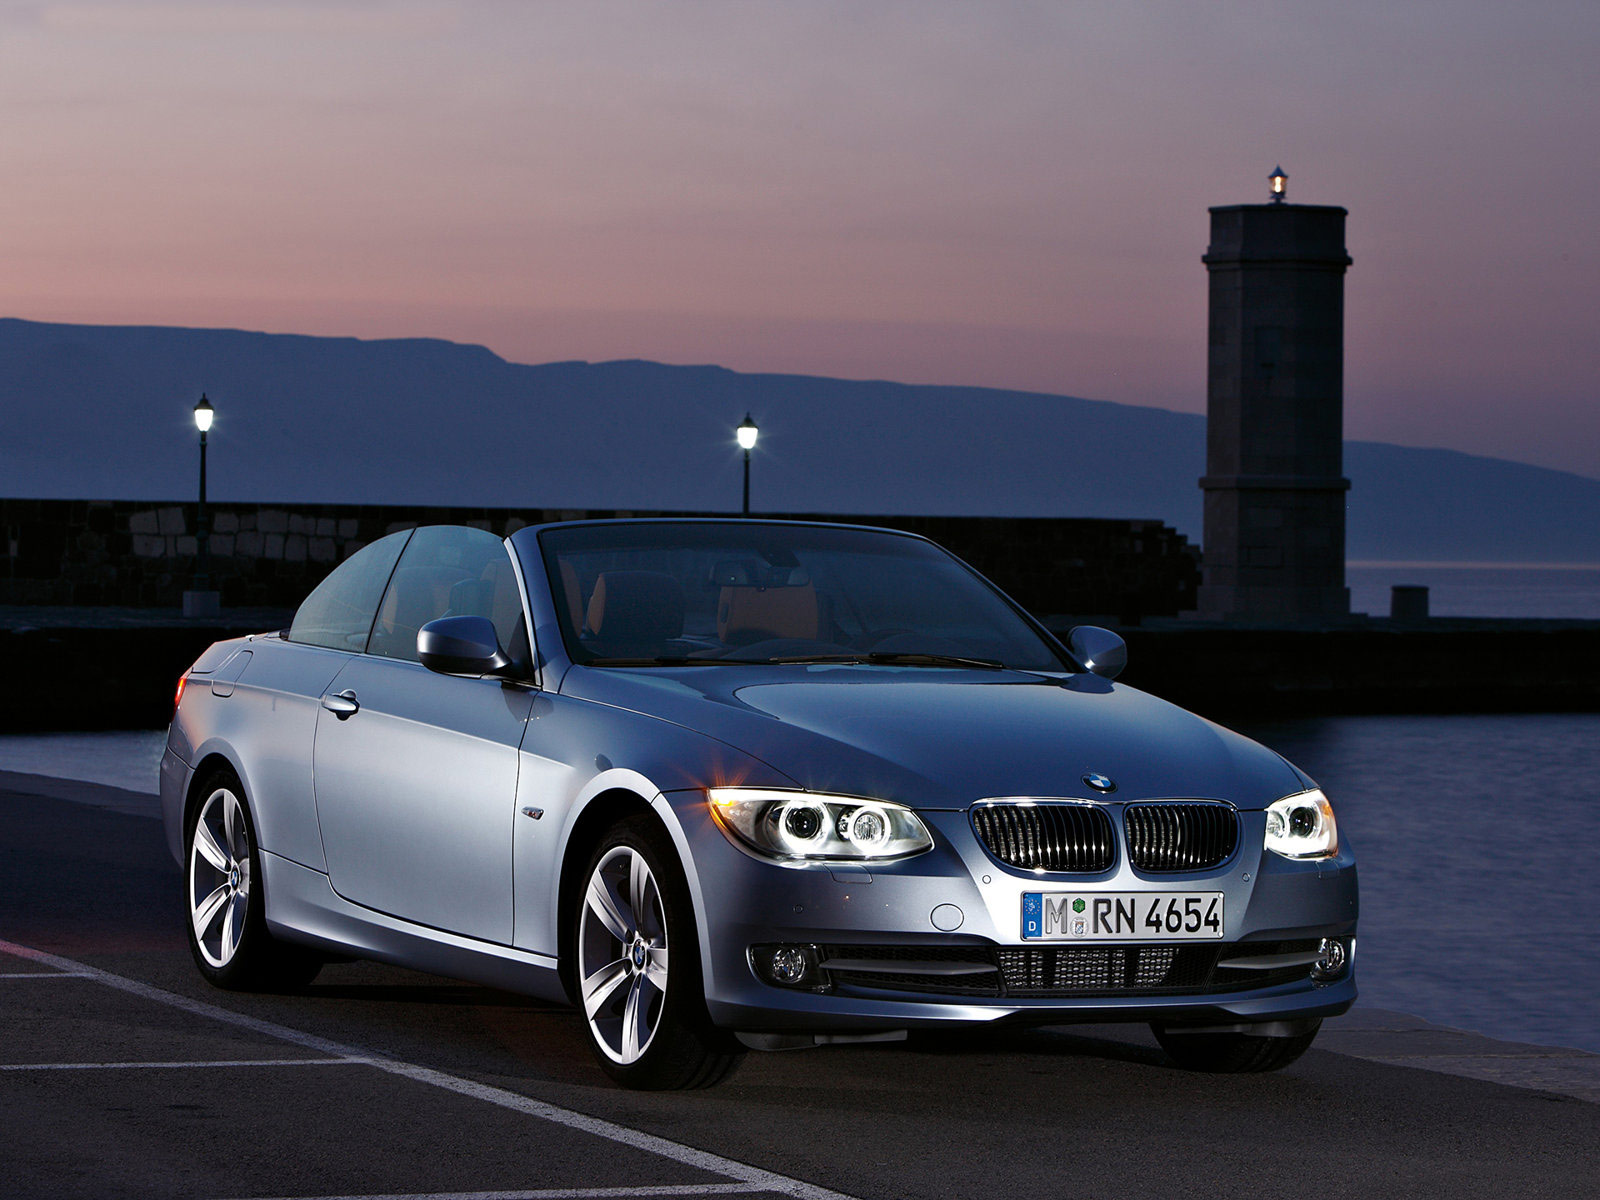 2011 BMW 328I Xdrive >> 2011 BMW 3-Series Convertible car accident lawyers